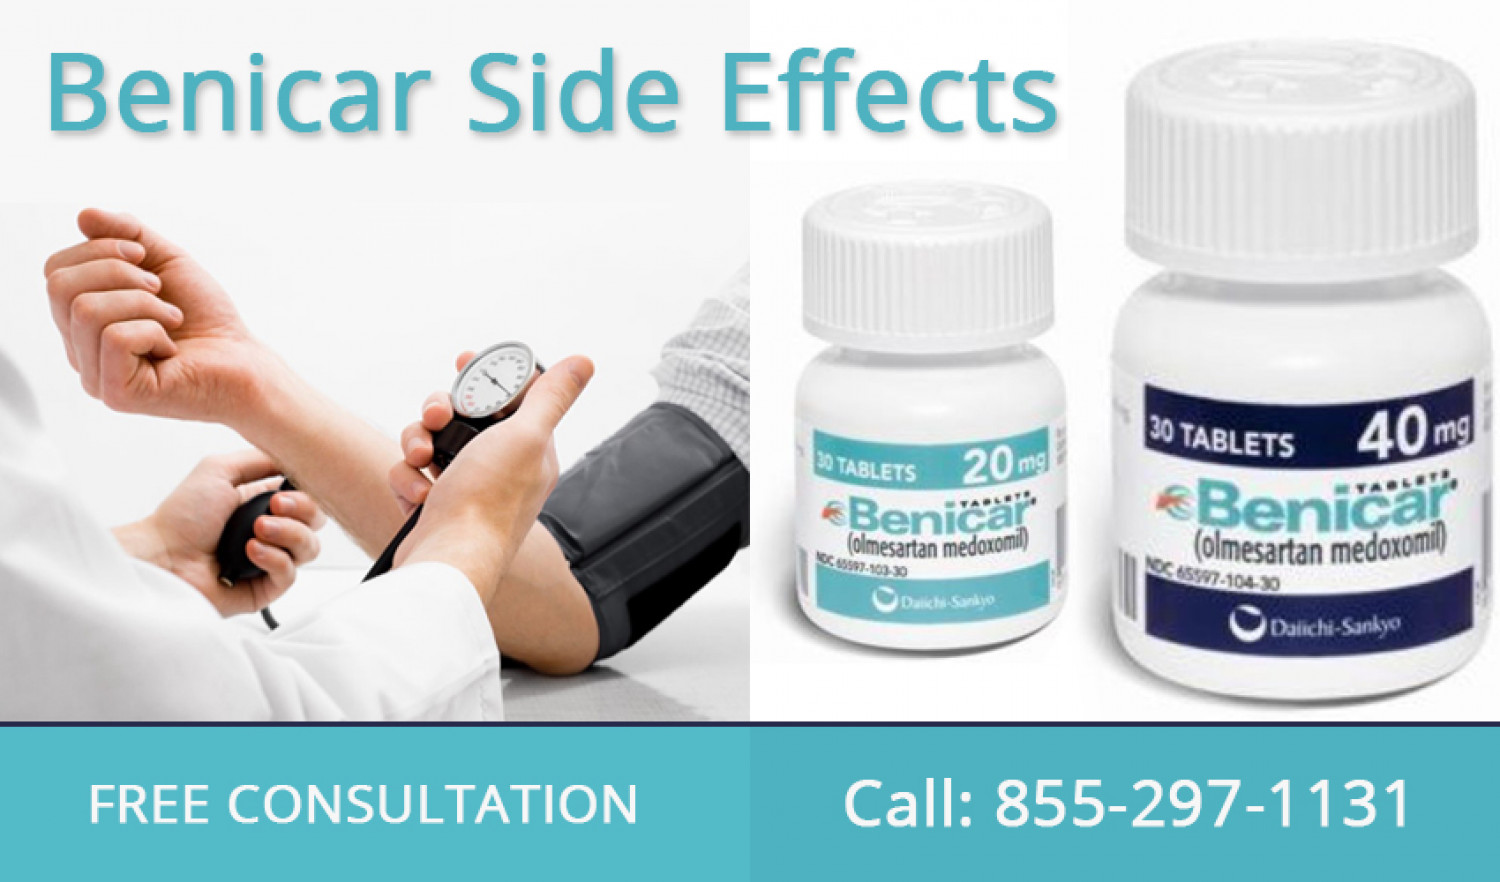 Benicar Side Effects Infographic